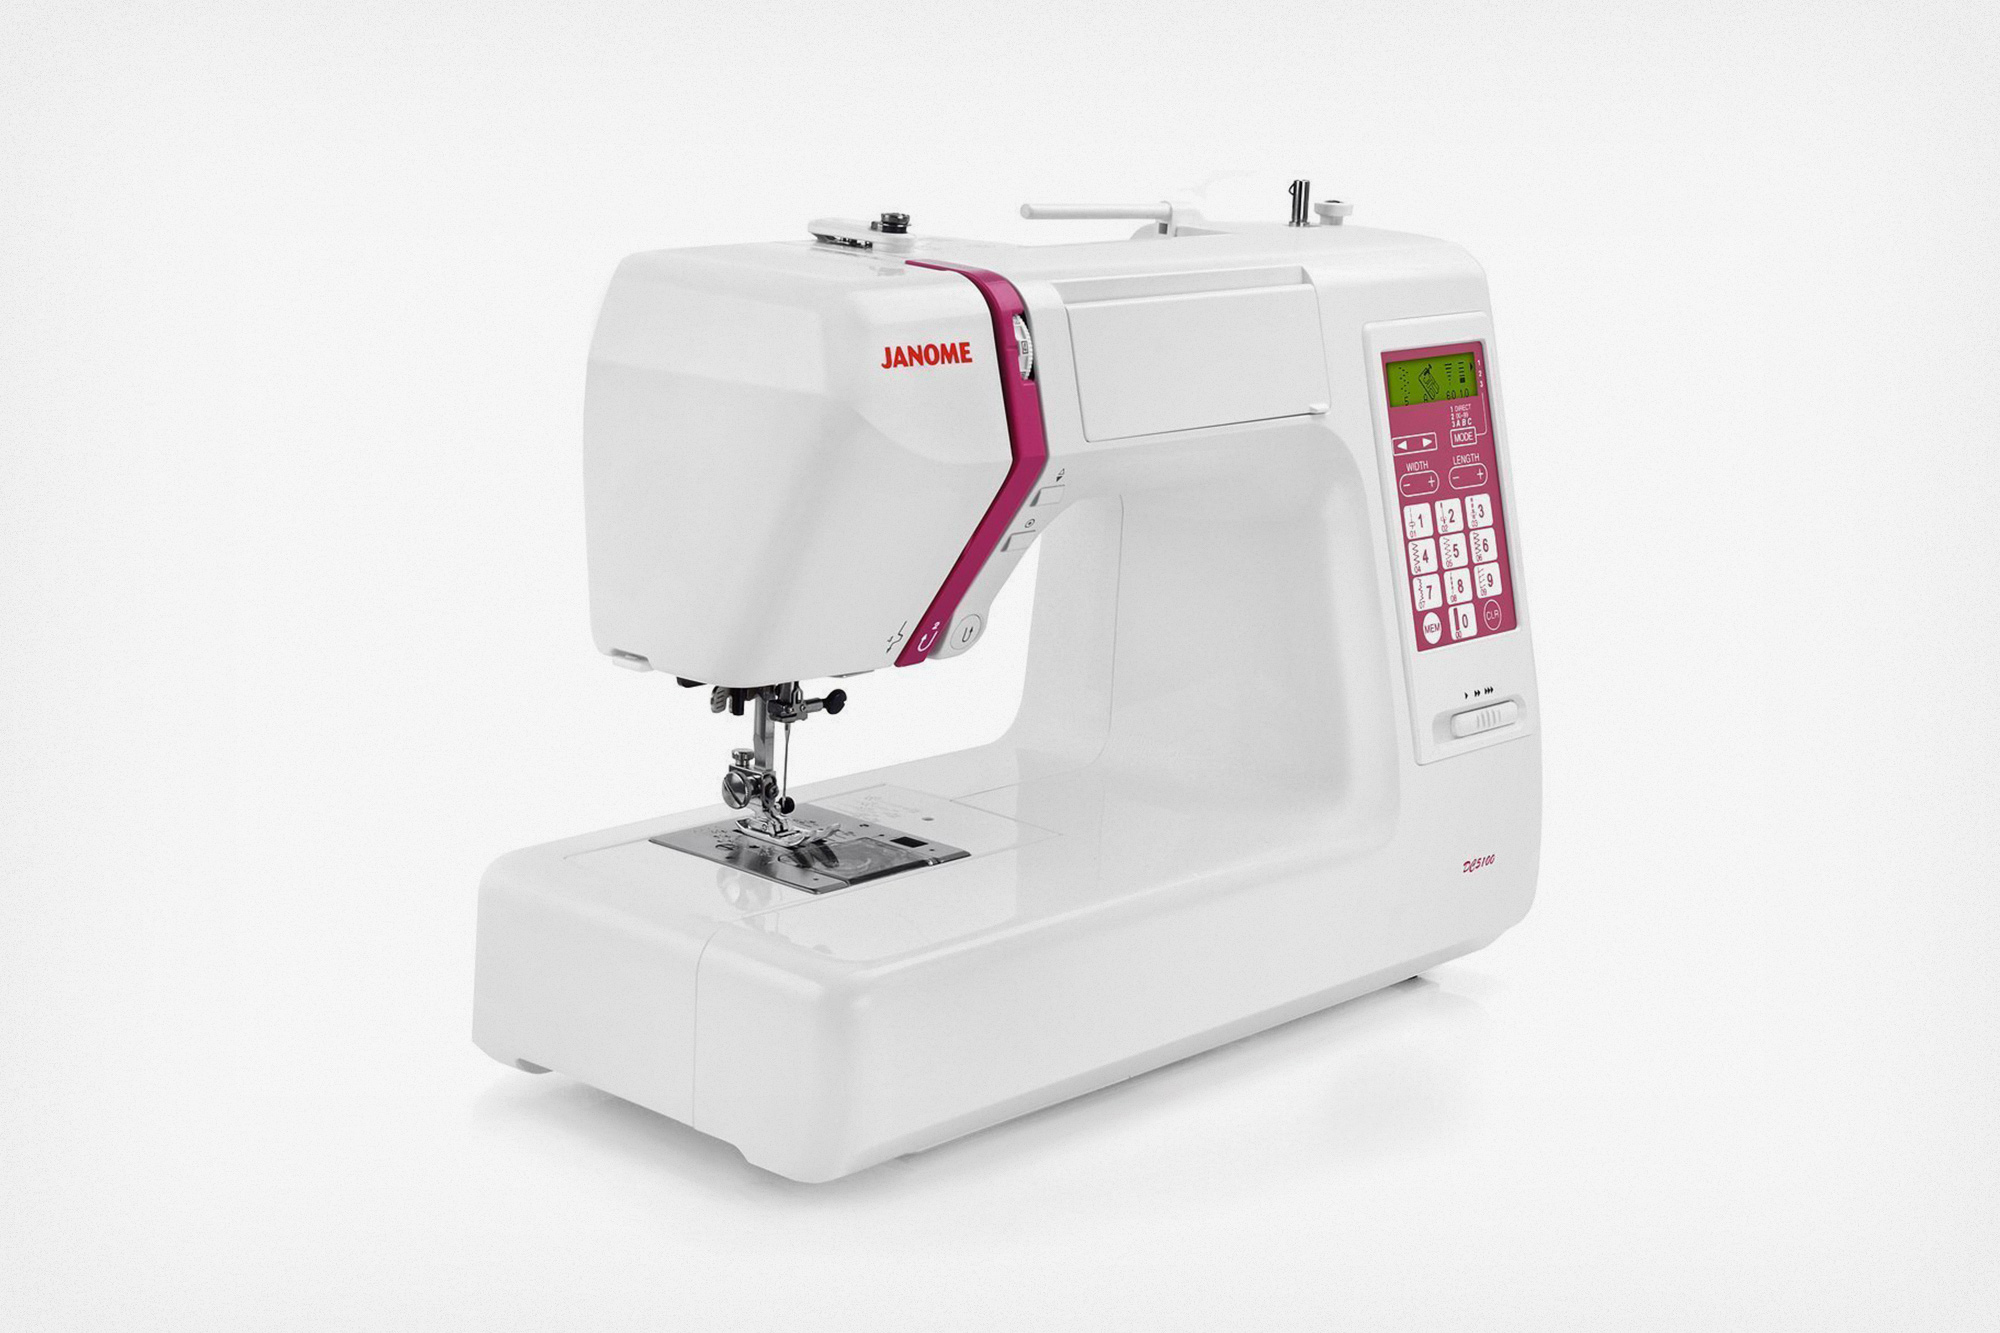 sewing right janome qm quilting quilt machine maker memory sergers products embroidery horizon machines craft